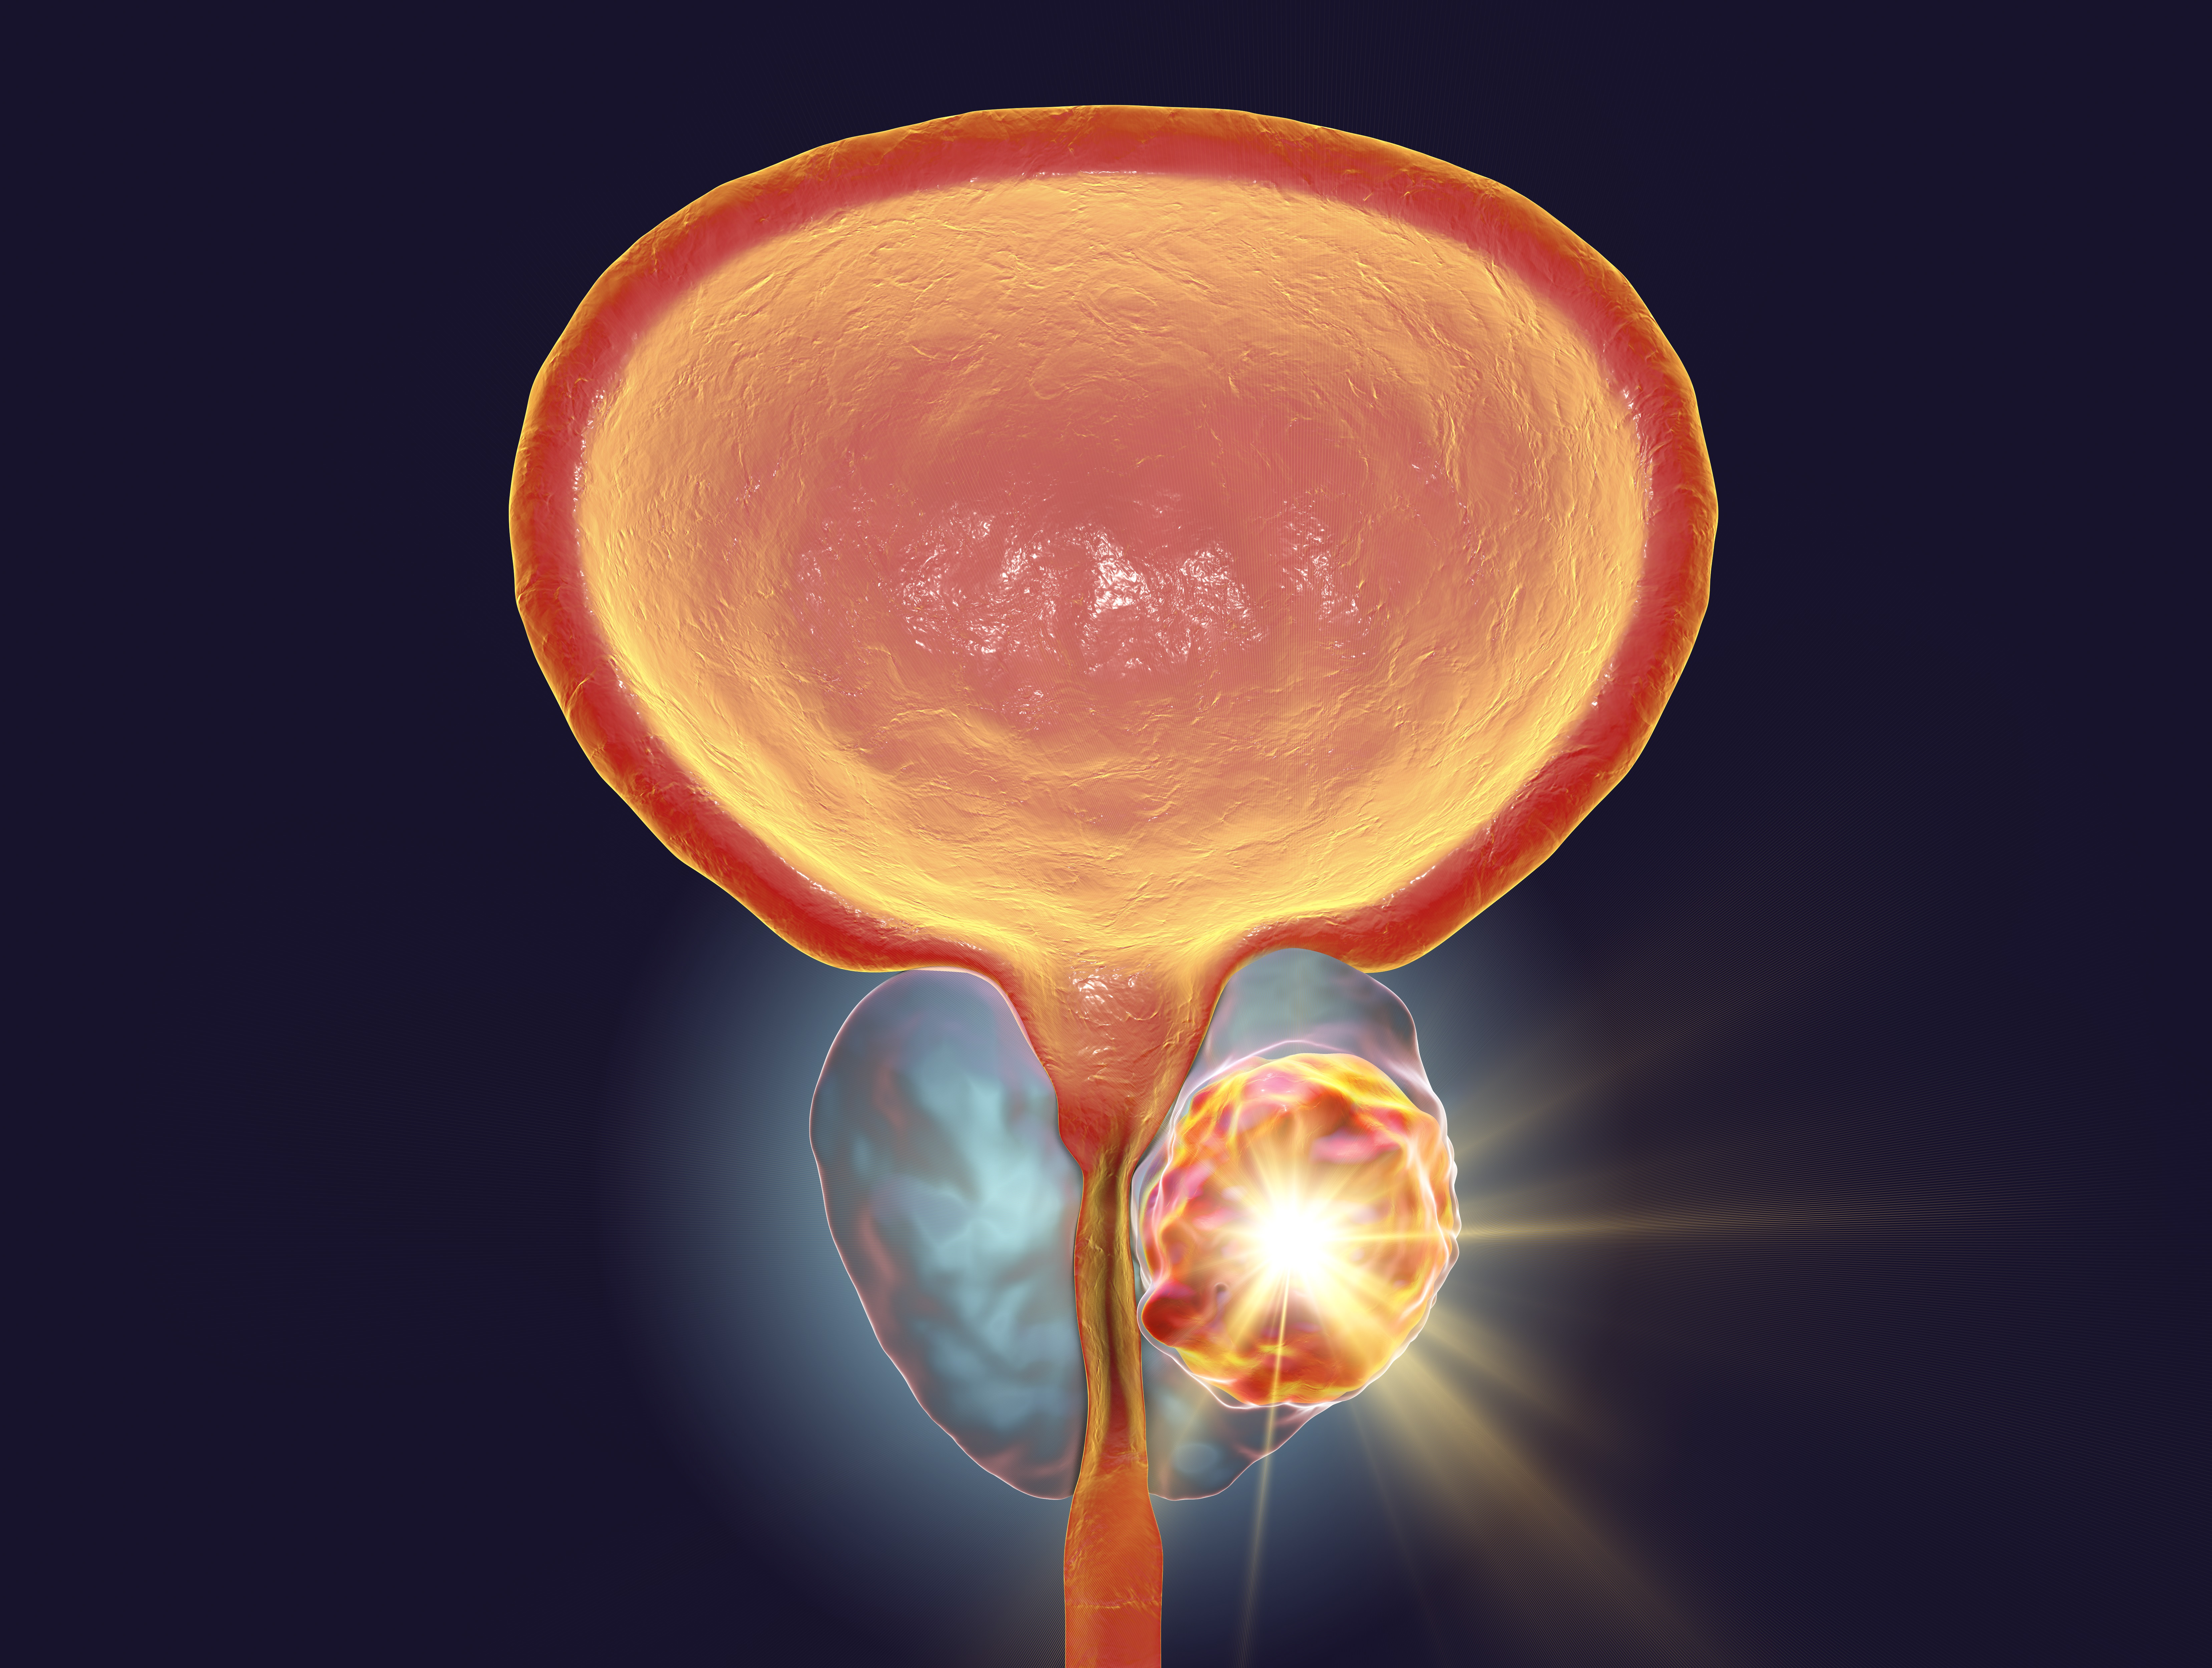 Treatment of prostate cancer, conceptual illustration